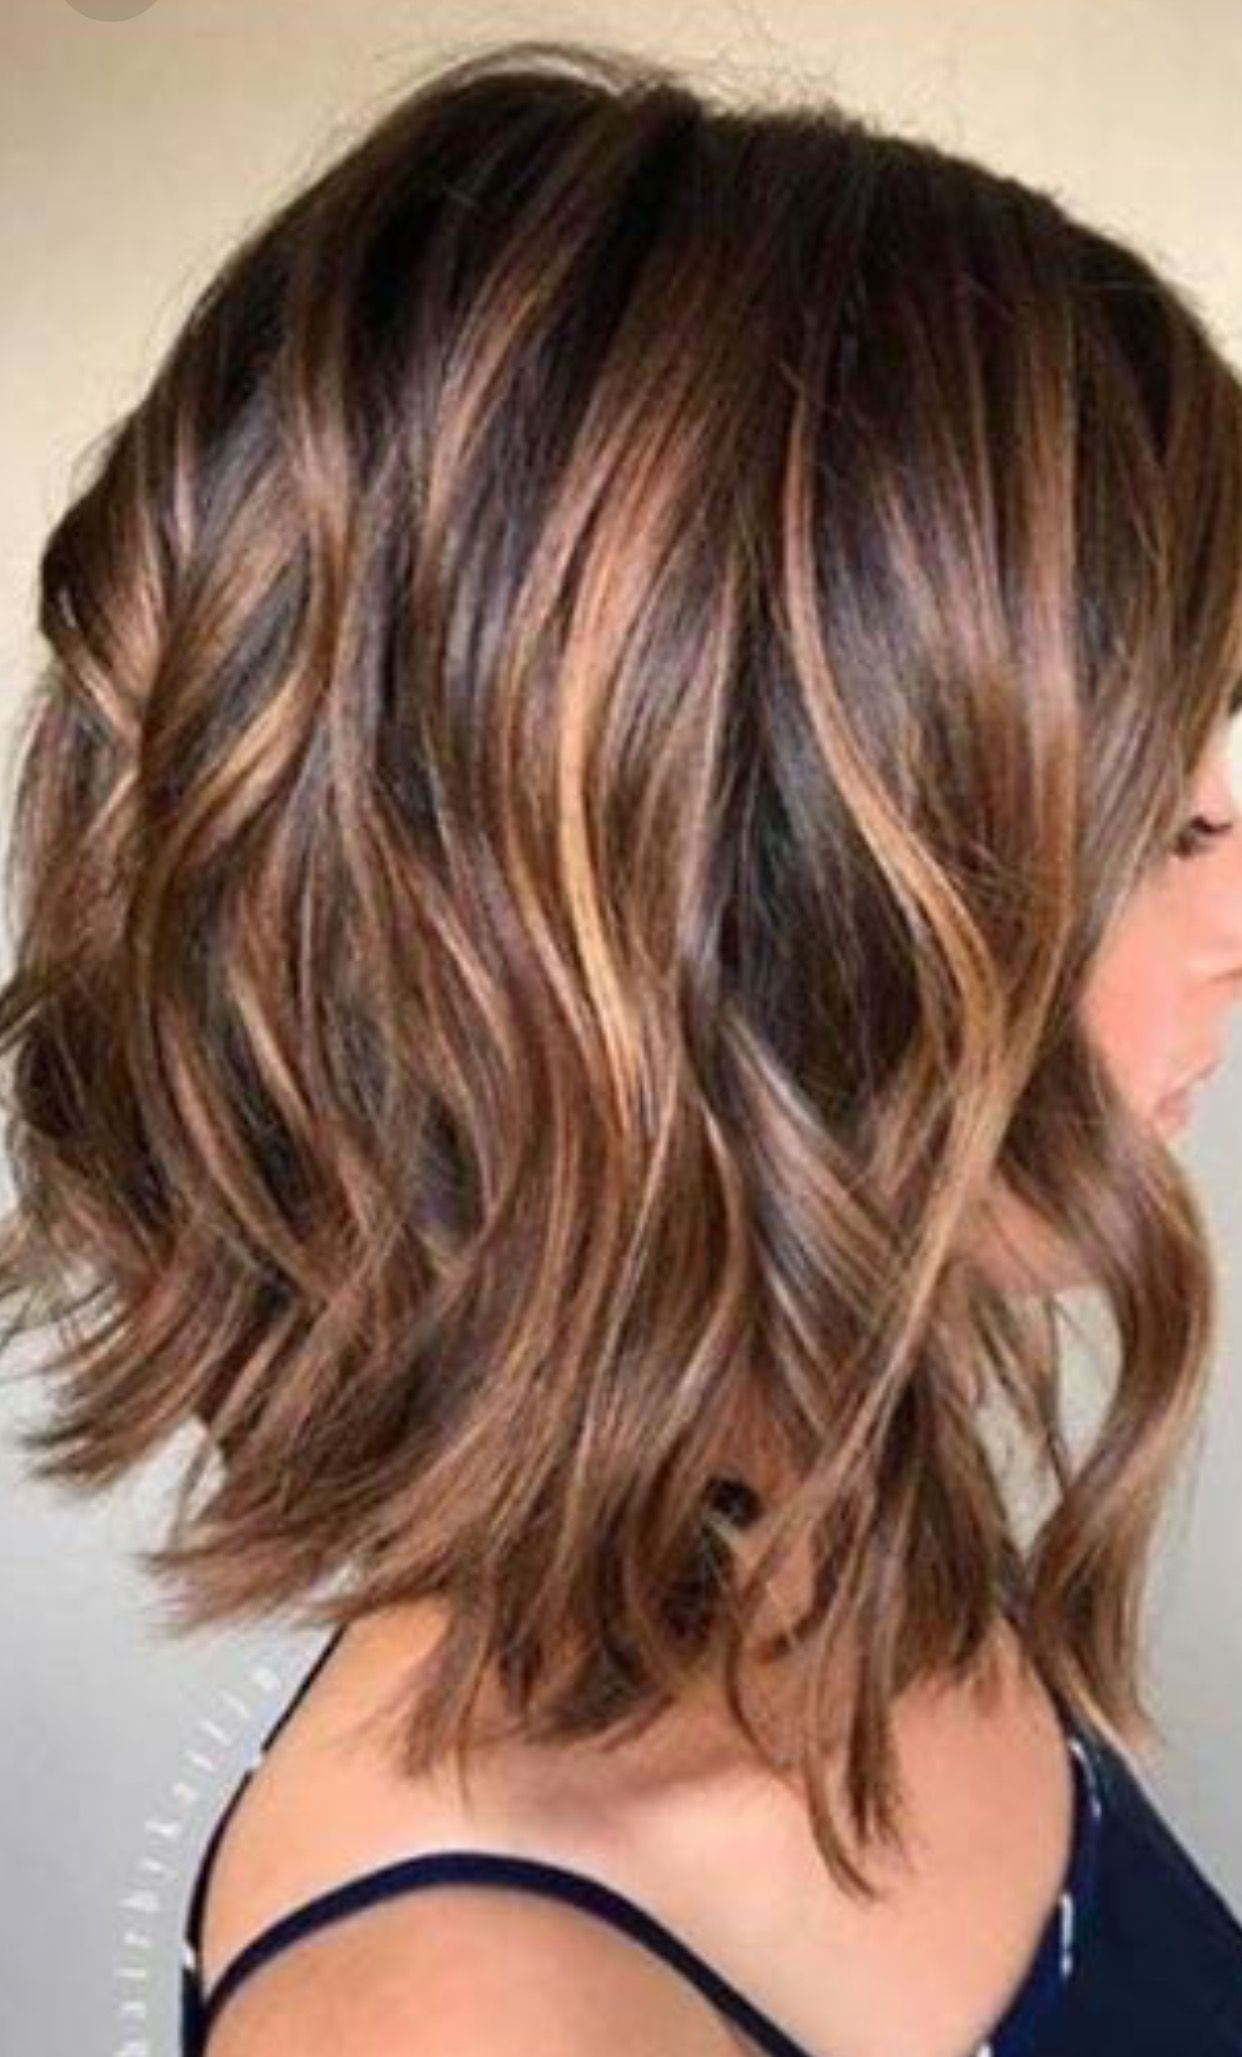 Pin by meggen lawrence on new do pinterest hair coloring hair